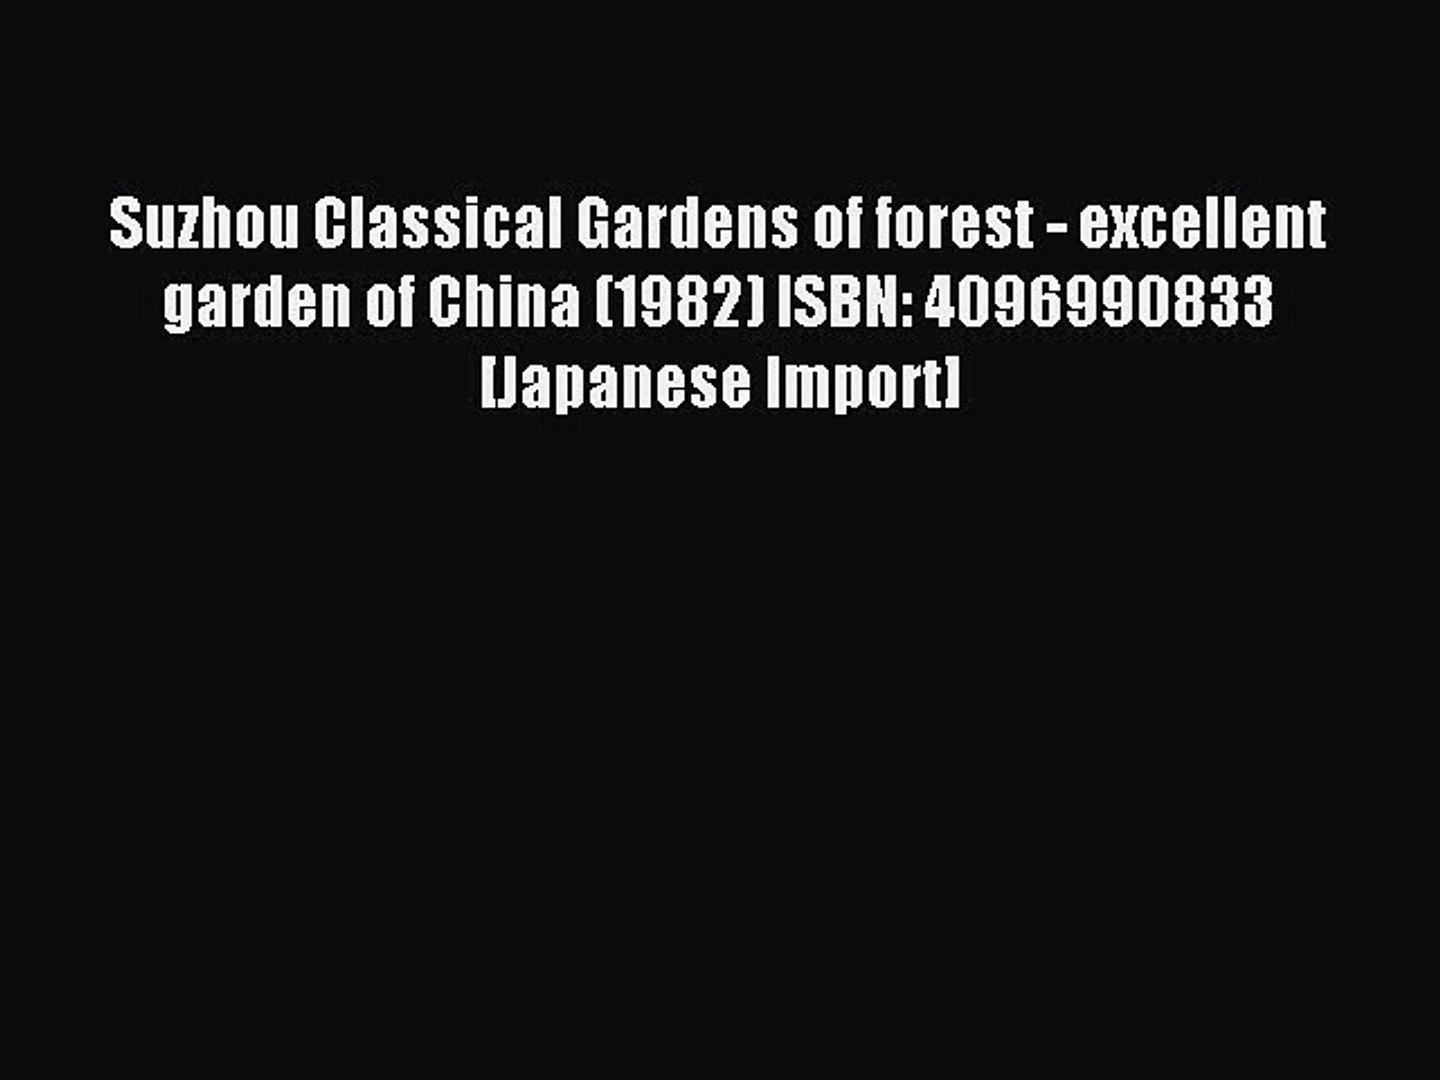 Read Suzhou Classical Gardens of forest - excellent garden of China (1982) ISBN: 4096990833